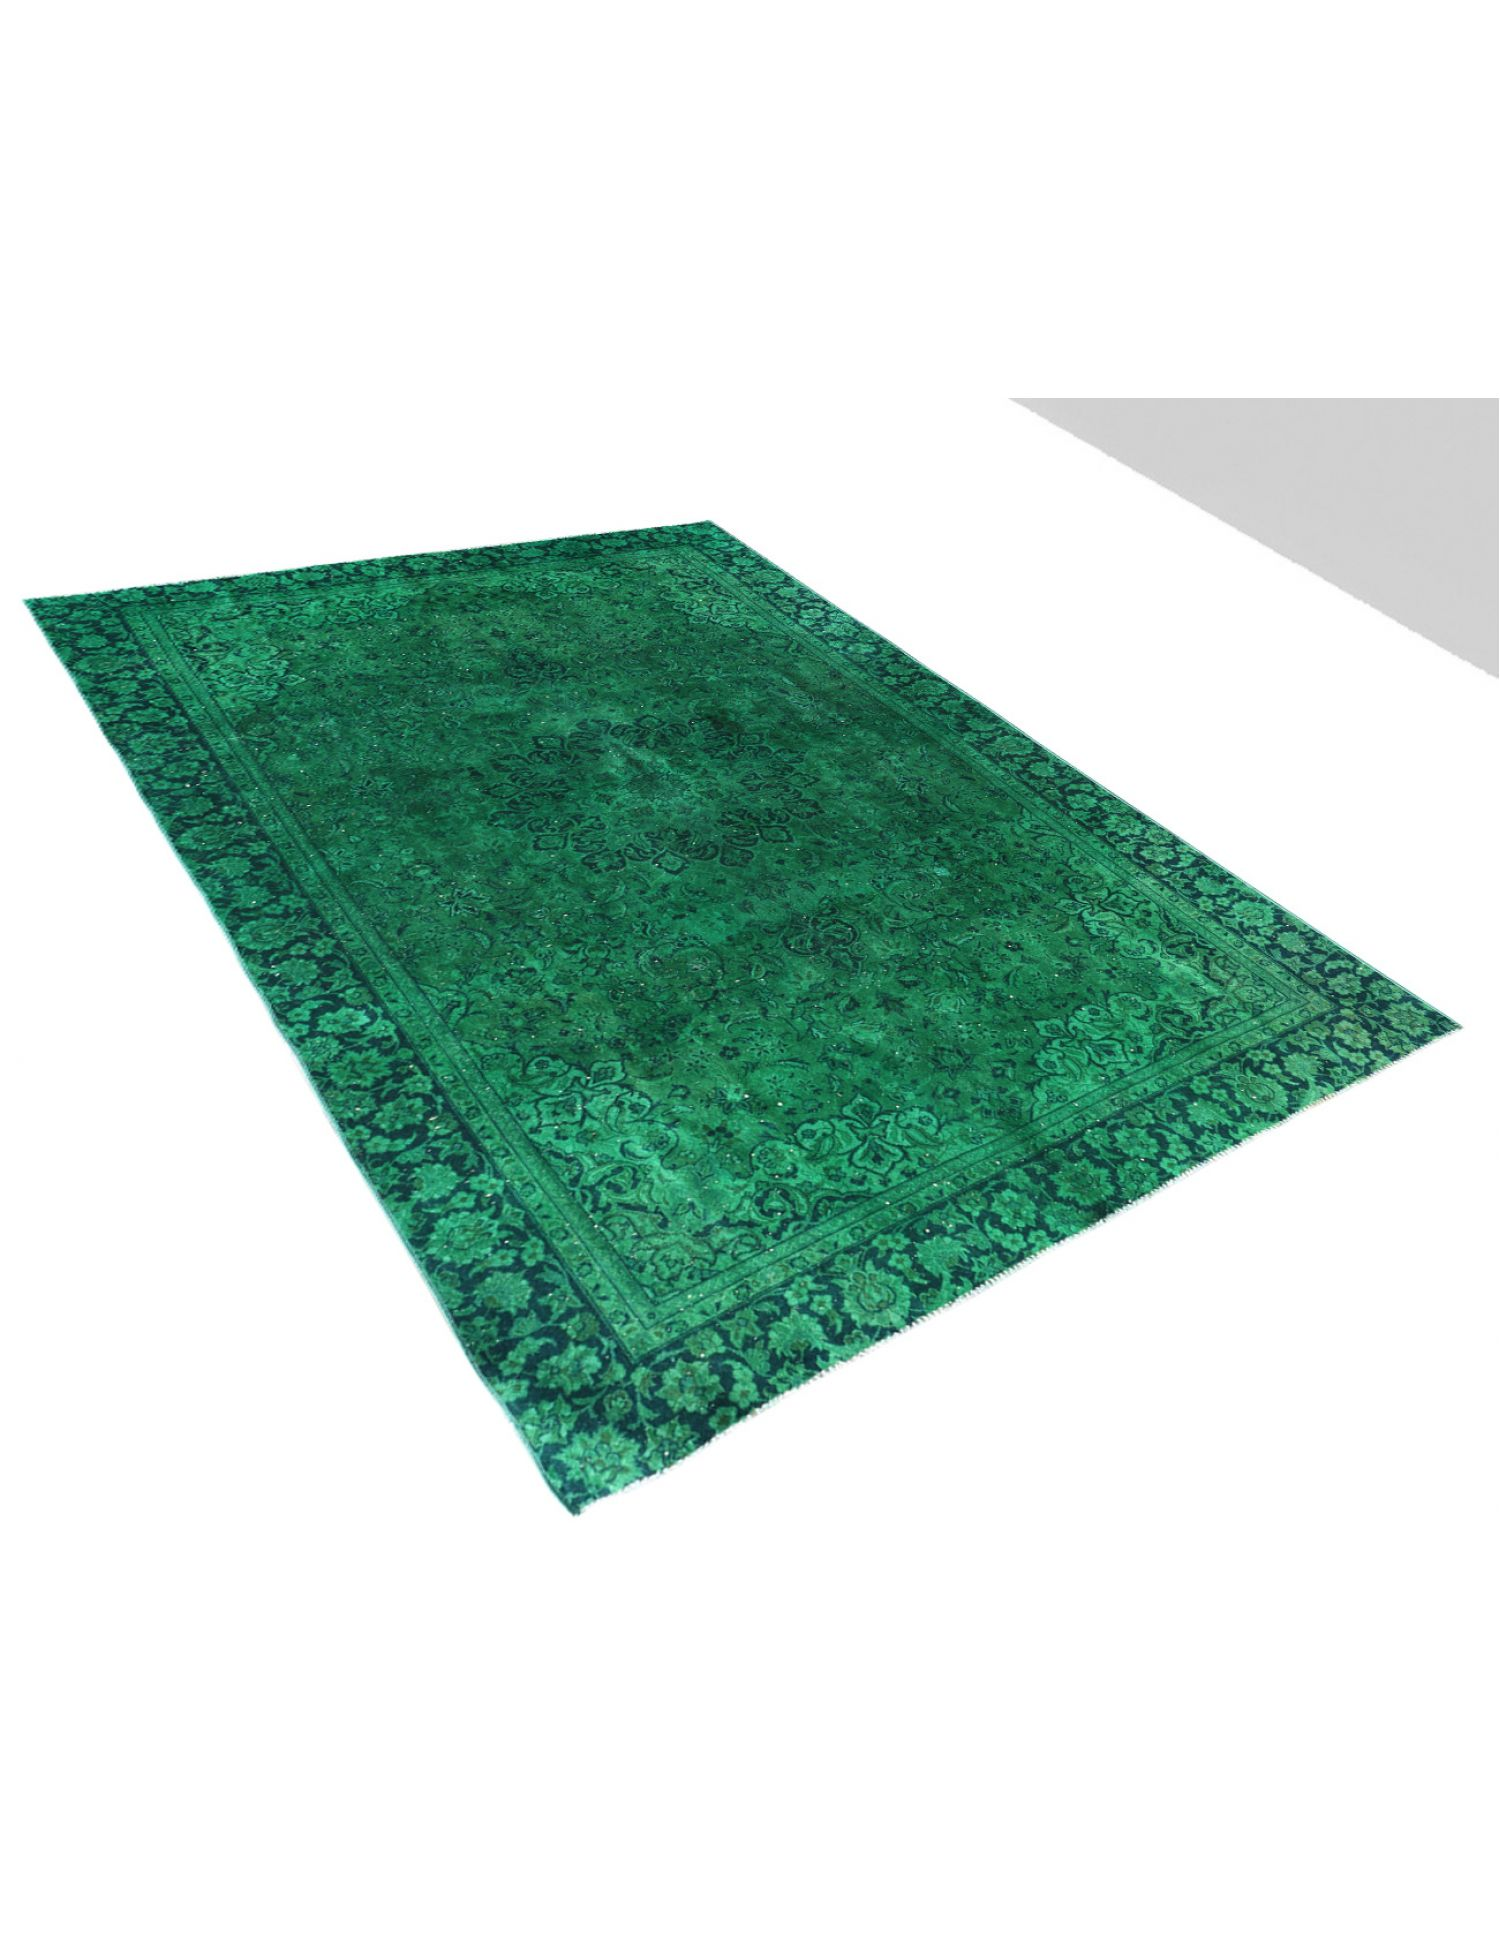 Vintage Carpet  green <br/>376 x 263 cm